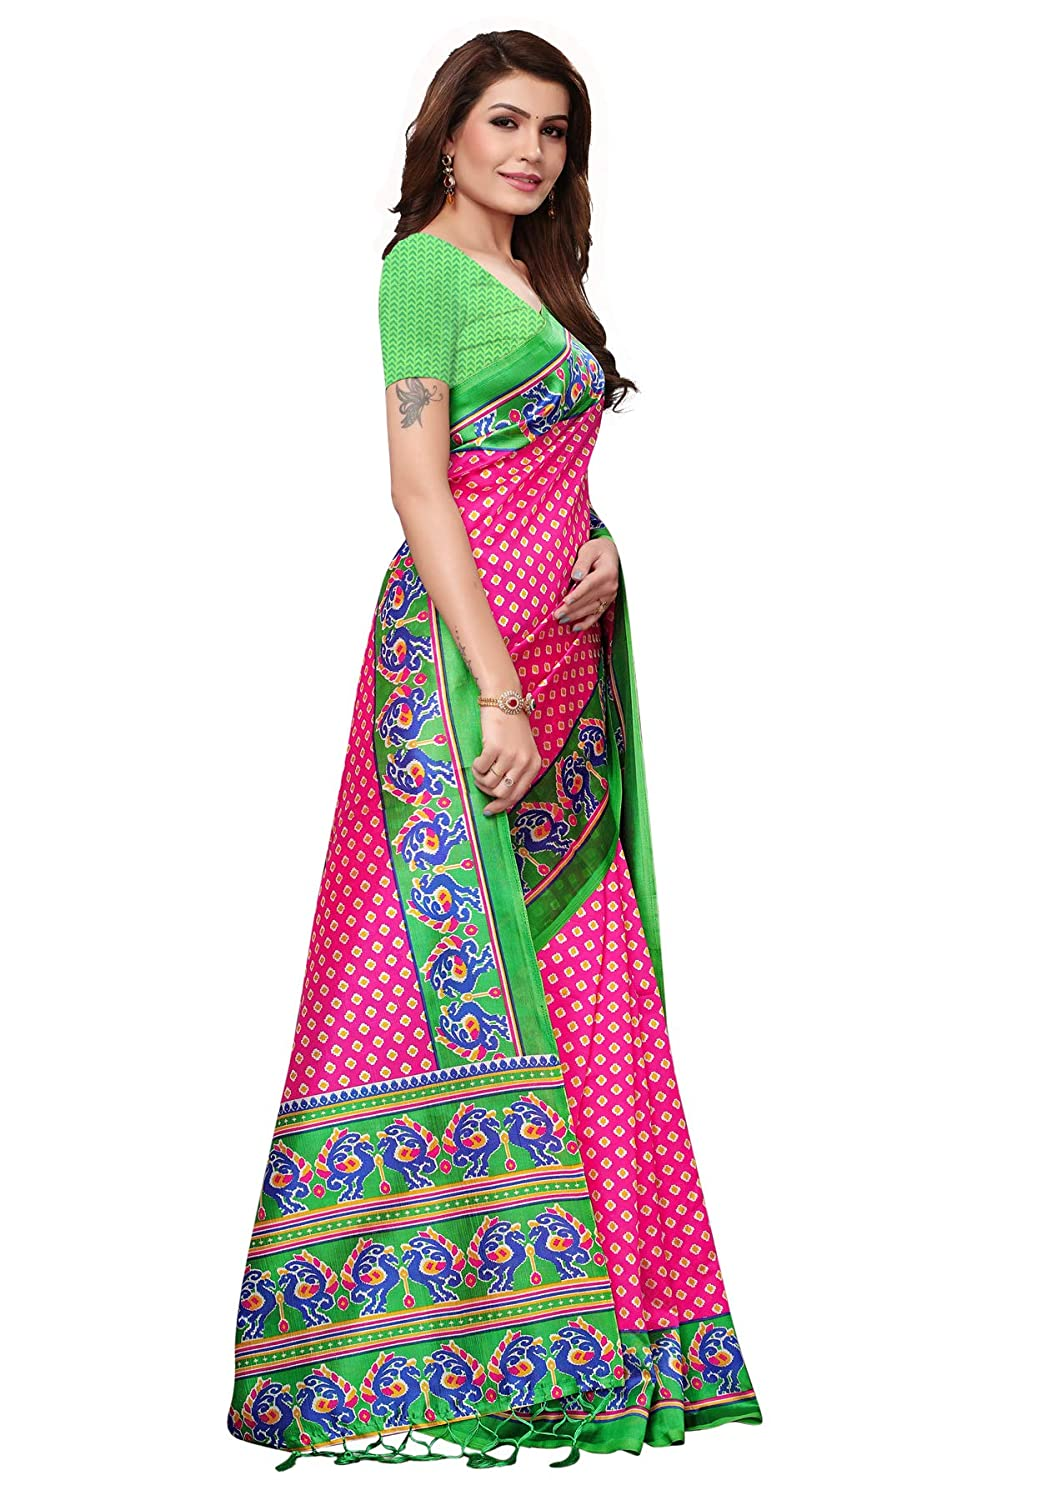 763deaa9b83 Salwar Studio Women s Pink   Green Mysore Silk Printed Saree with Blouse  Piece(OM-0041324 Pink Free Size)  Amazon.in  Clothing   Accessories